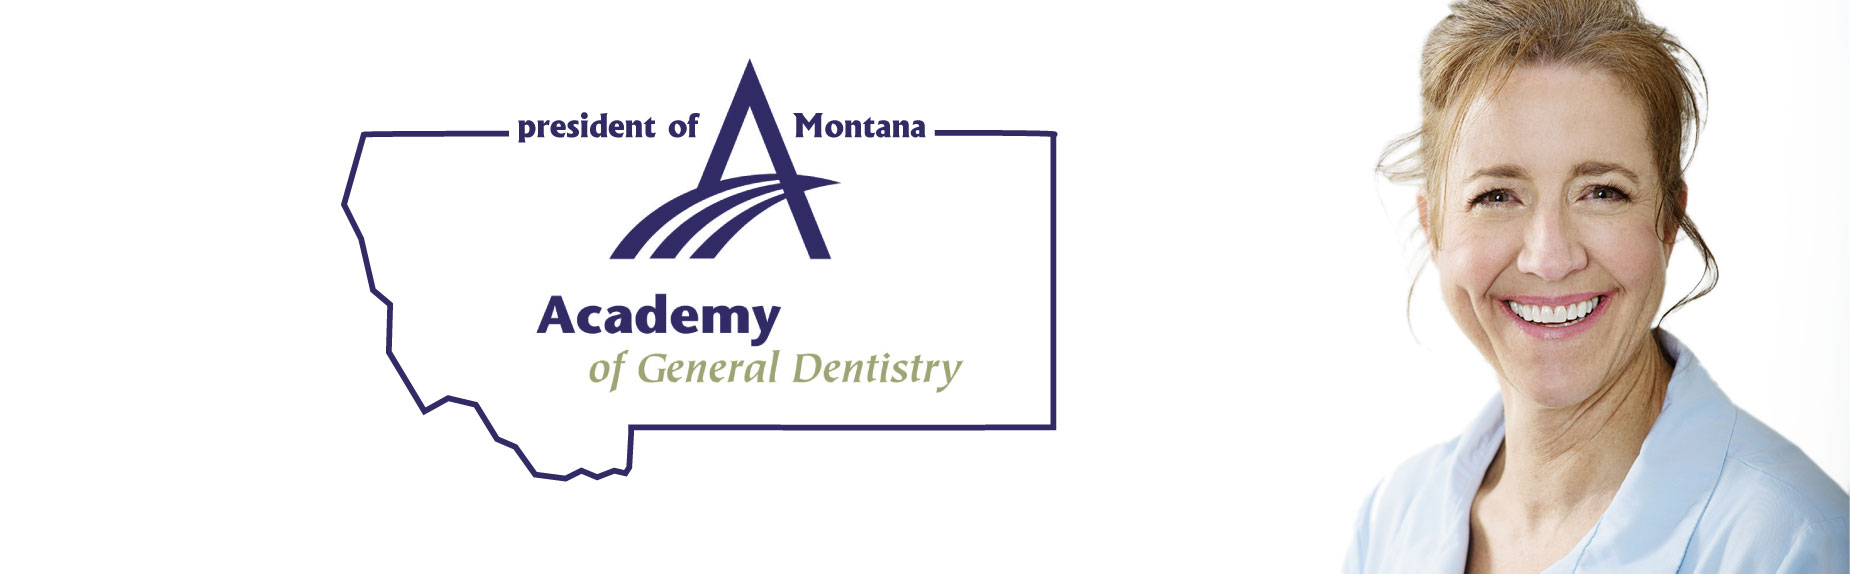 Leslie Hayes is the President of the Montana Academy of General Dentistry